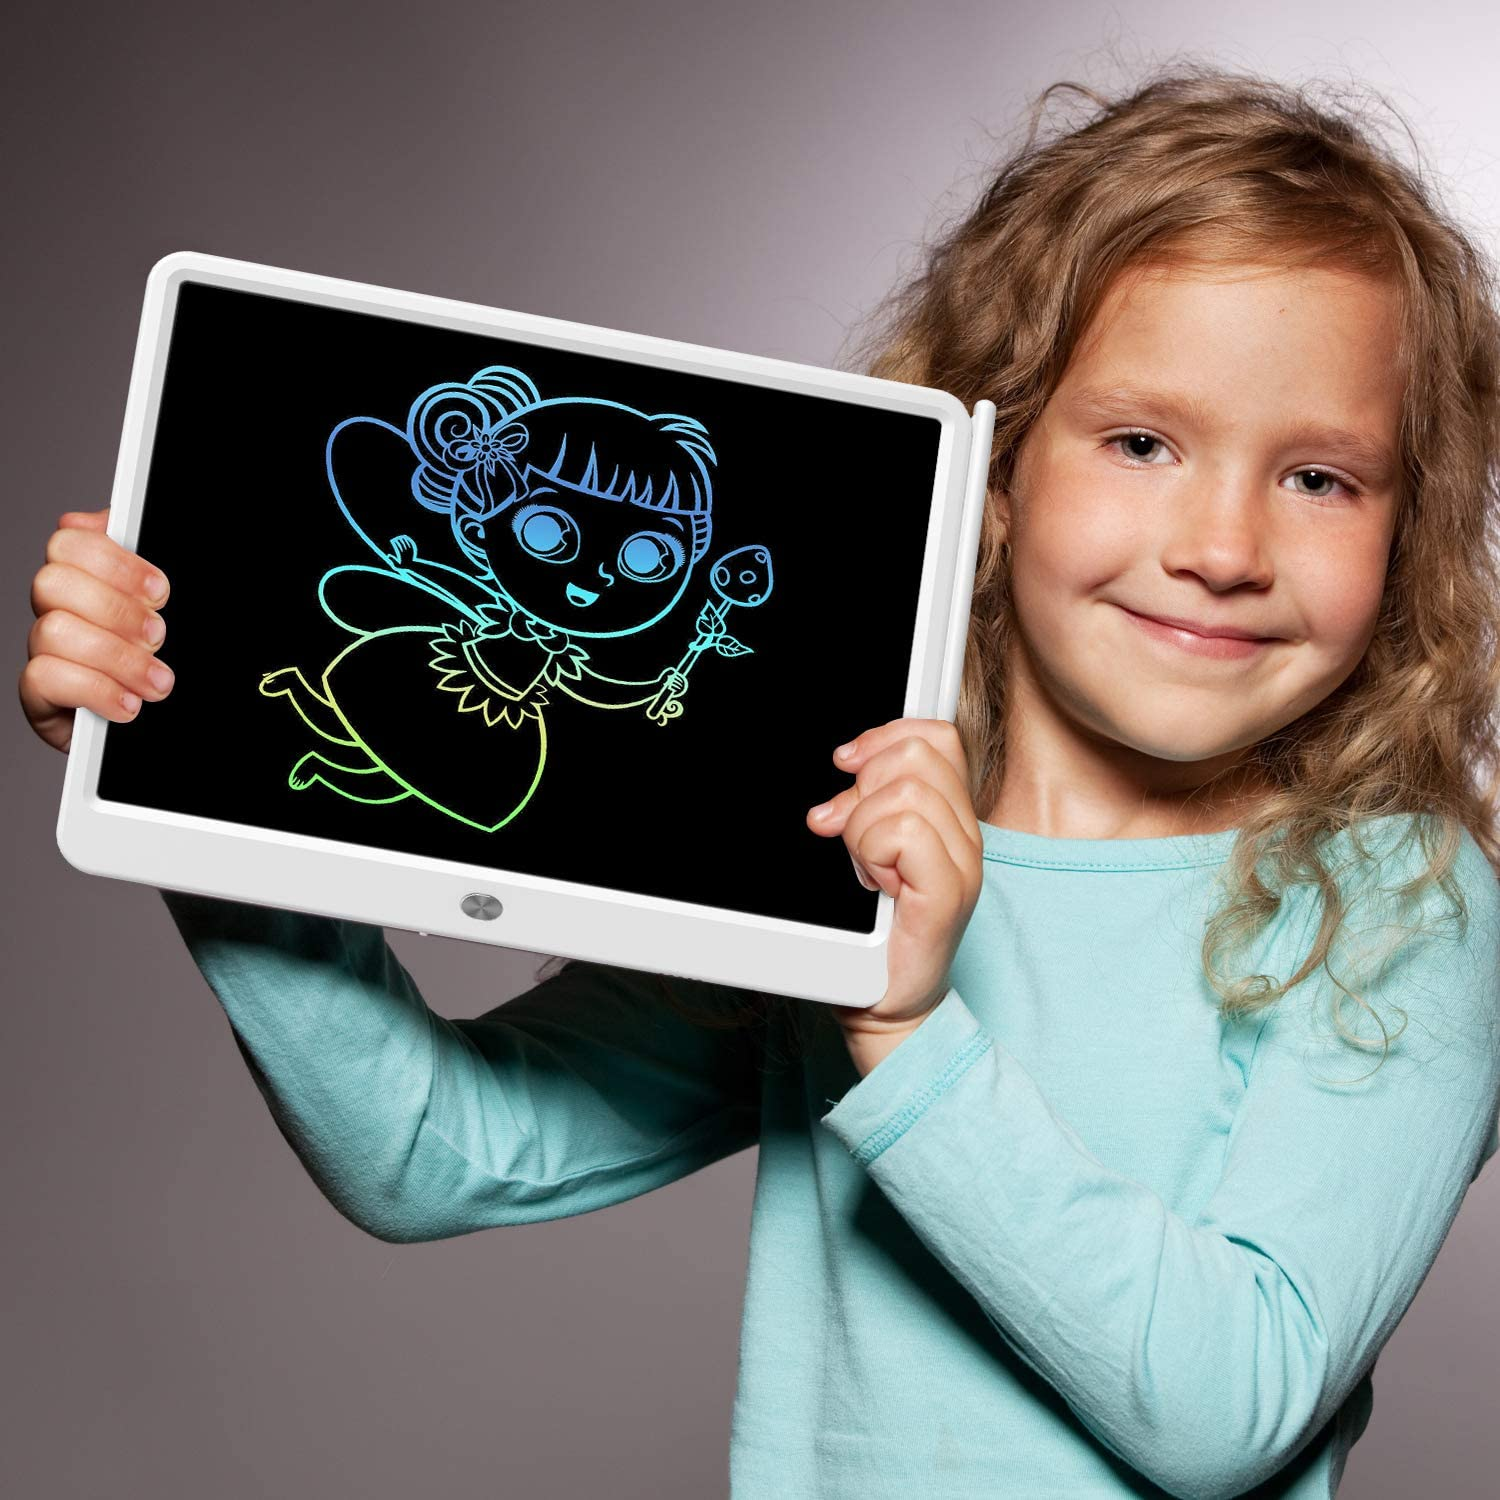 Doodle Board Electronic Digital Drawing Tablet for Adults and Kids Ages 3+ LCD Writing Tablet 15 Inches Colorful Screen Drawing Pad